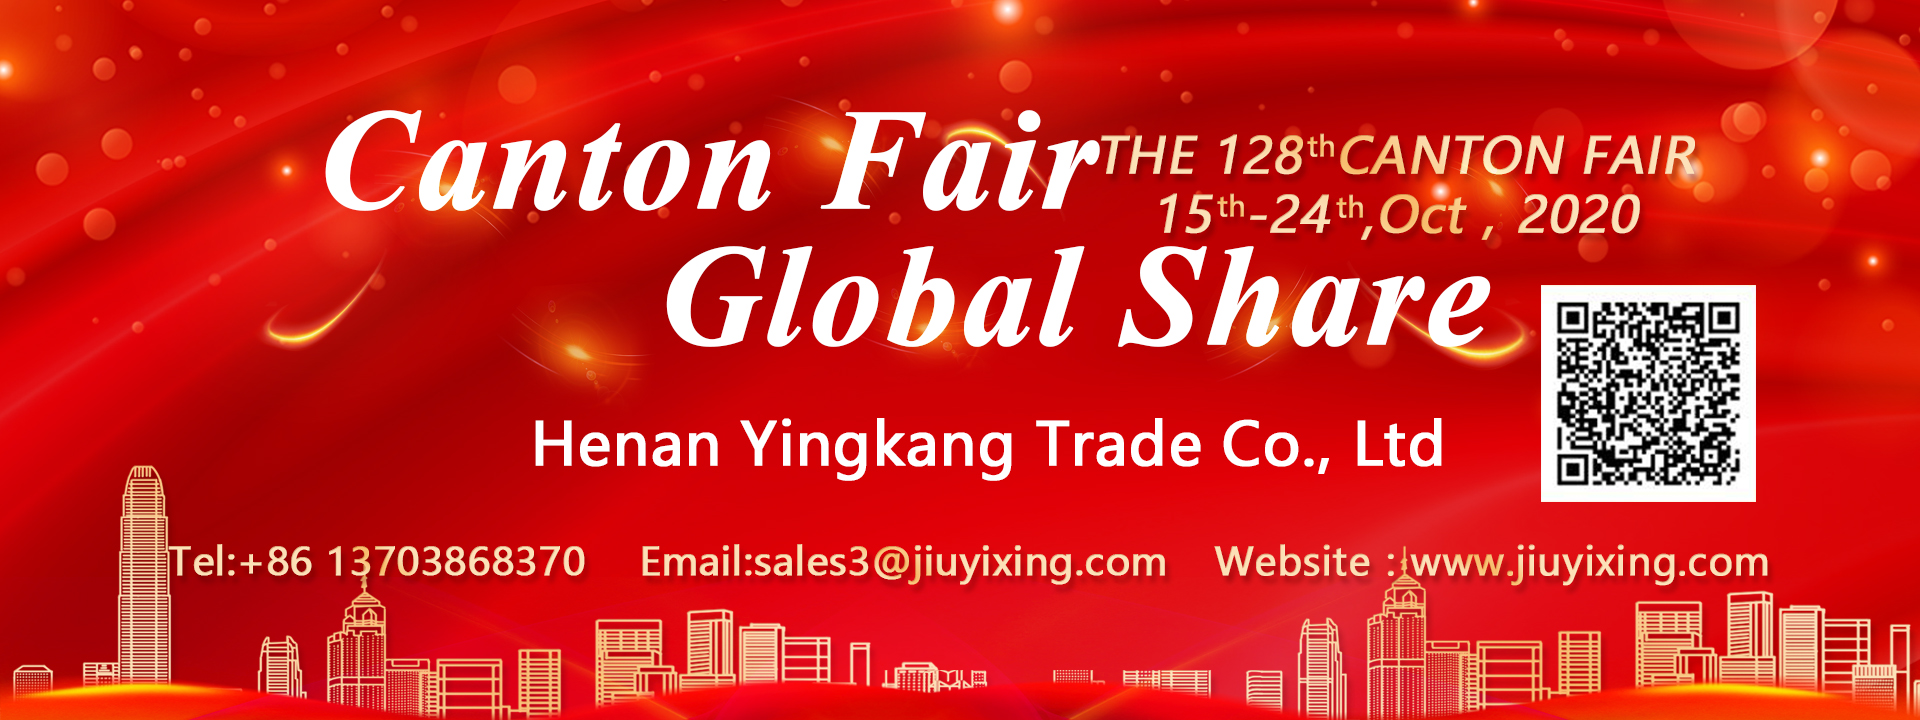 We'll wait for you at the 128th Canton Fair